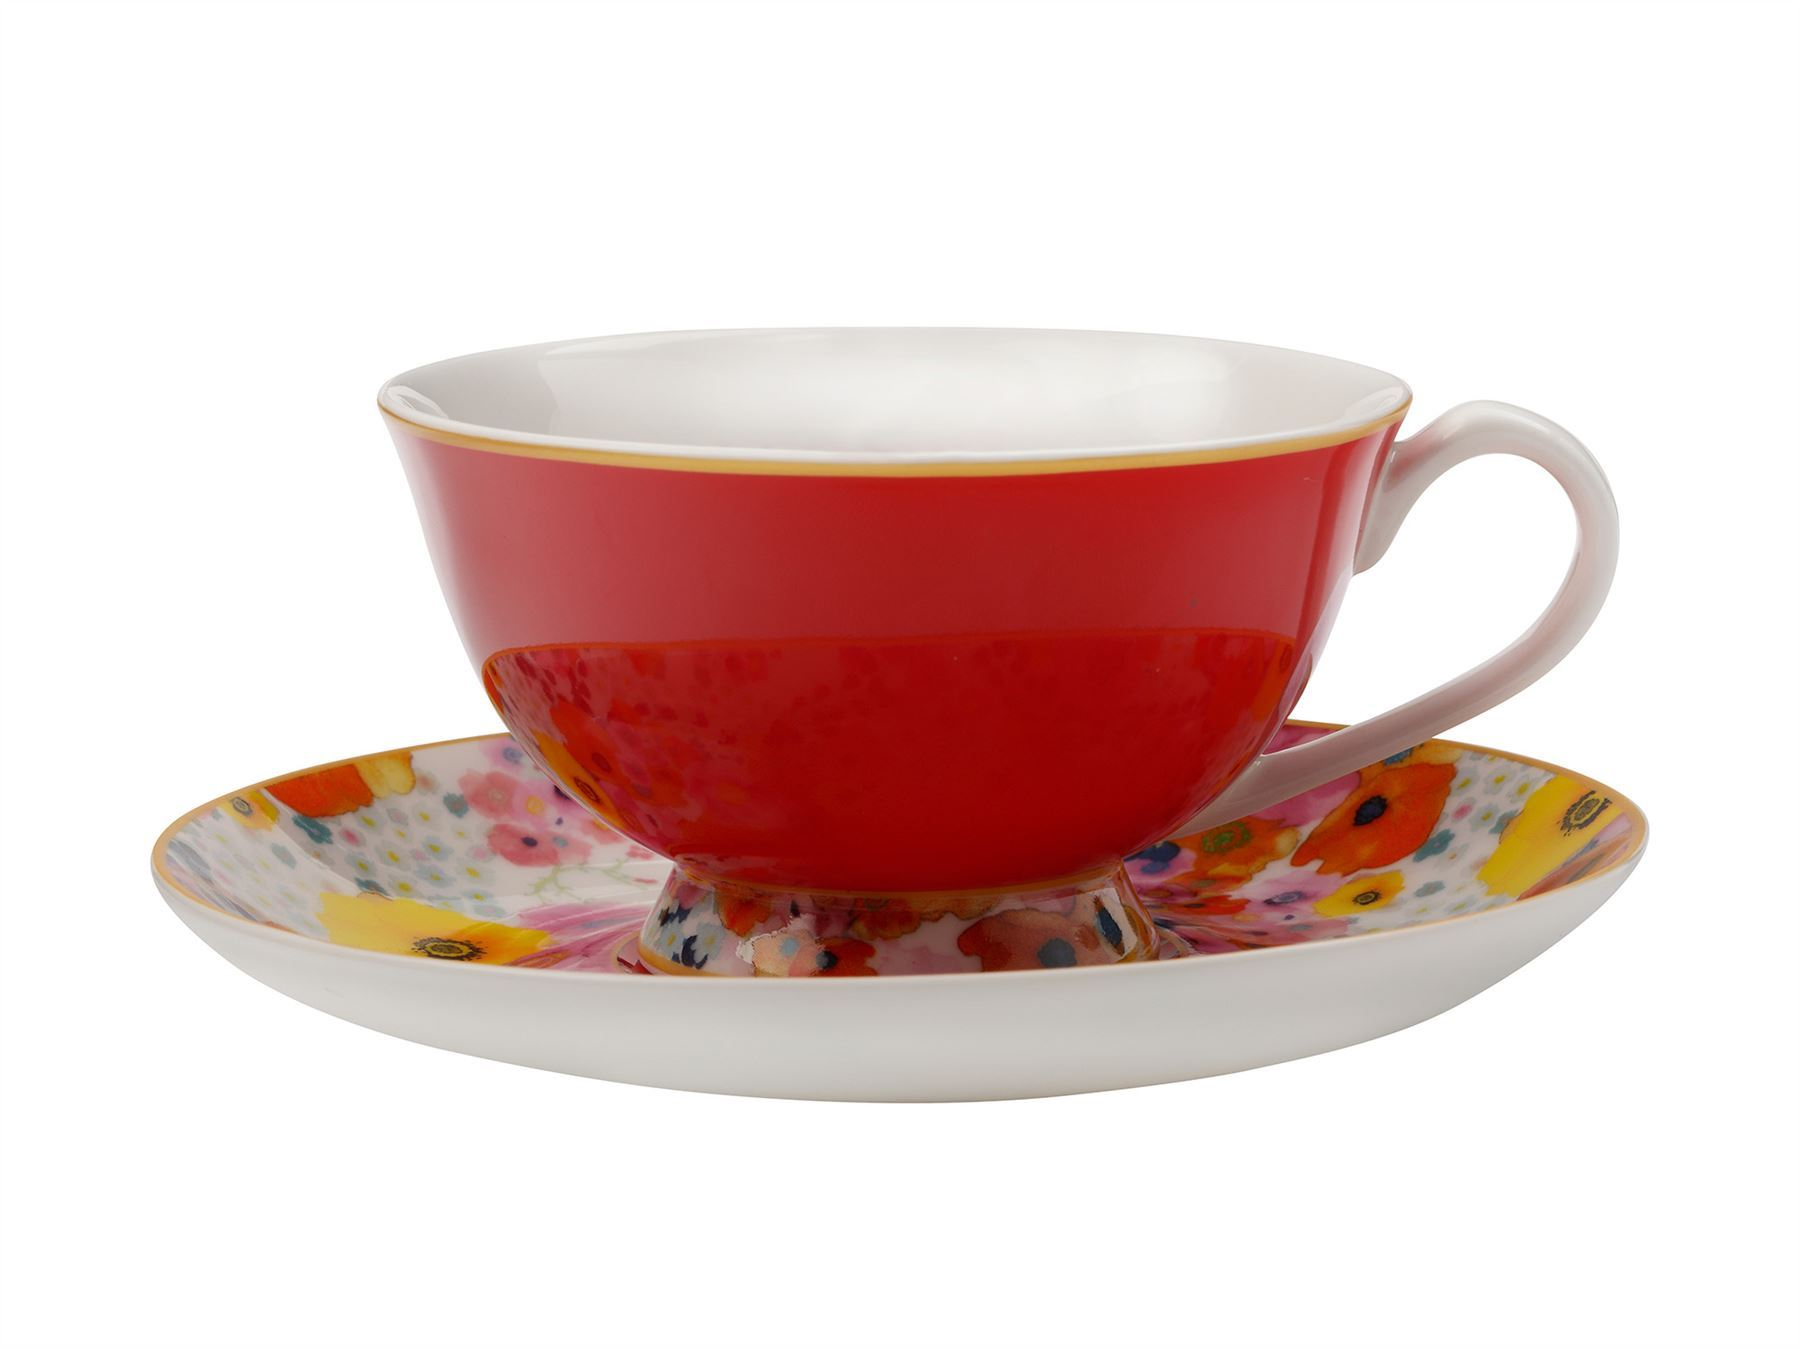 Details about 2x Maxwell & Williams Cashmere Bloems Tea Cup And Saucer Red